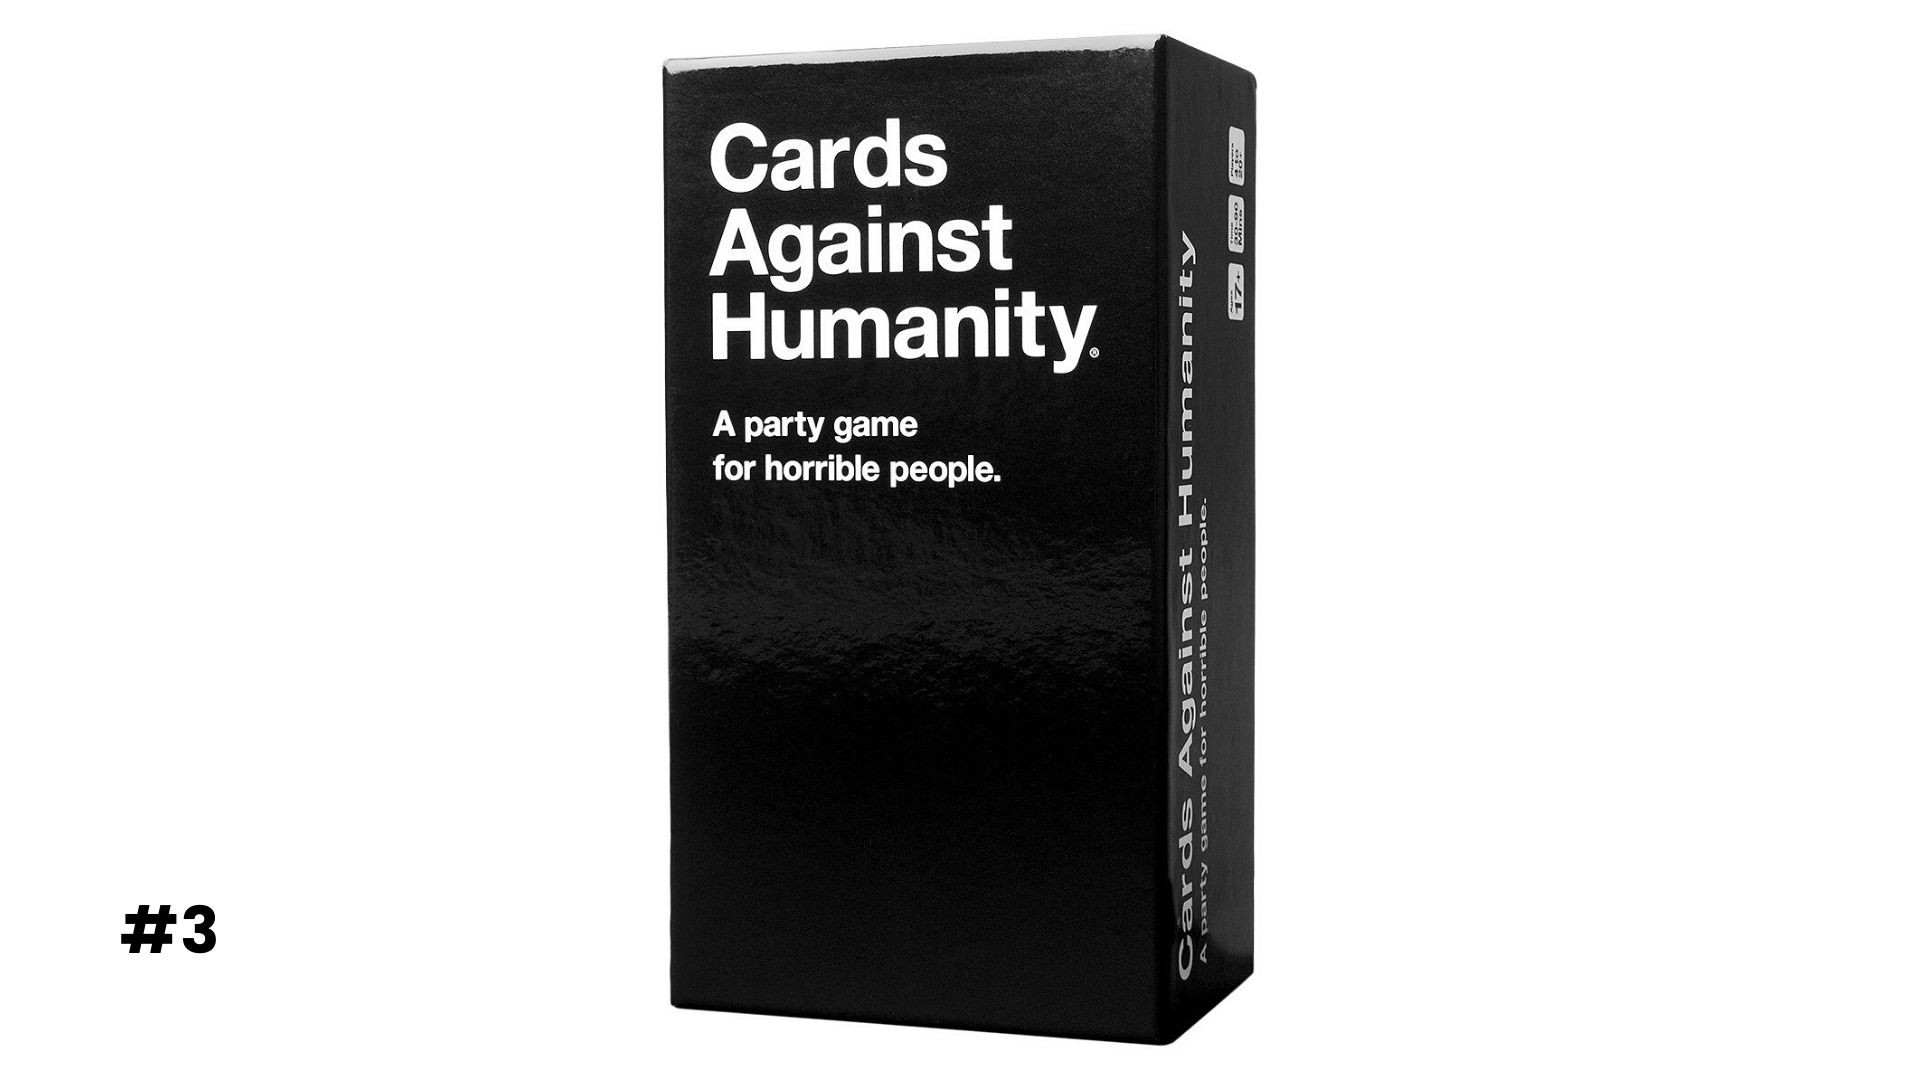 #3 Cards Against Humanity